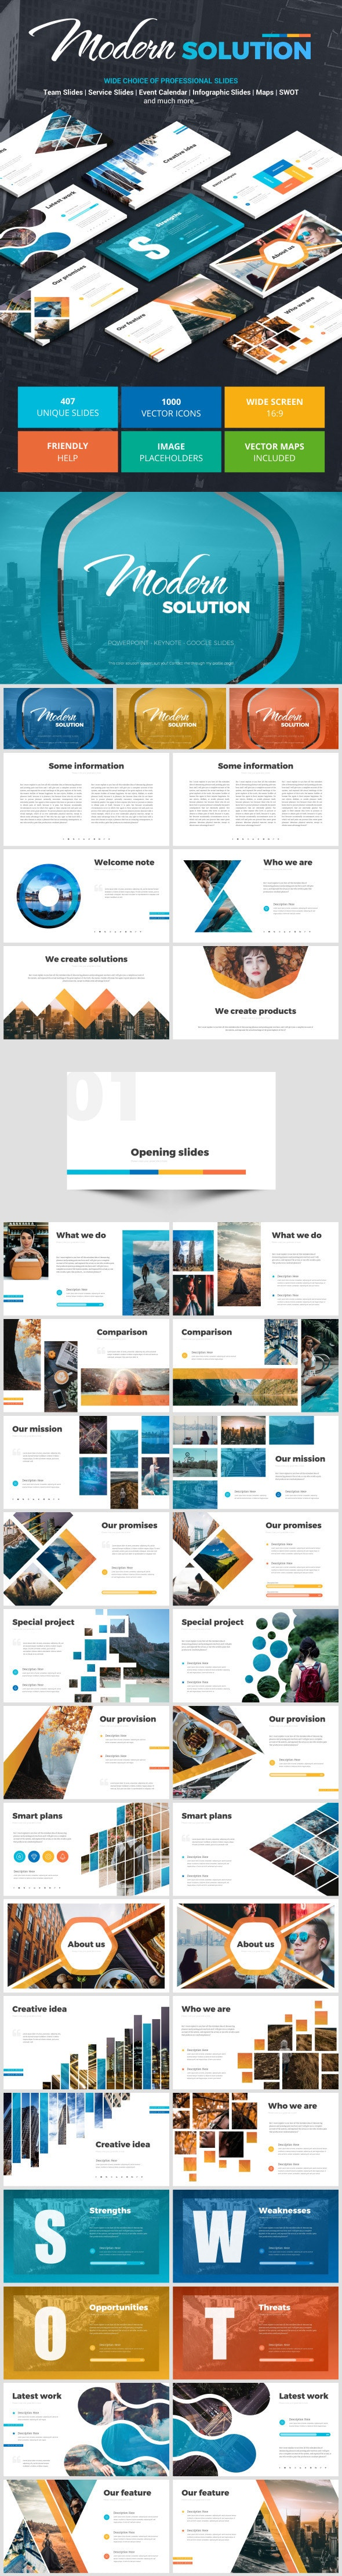 Modern Solution - Google Slides Presentation Templates